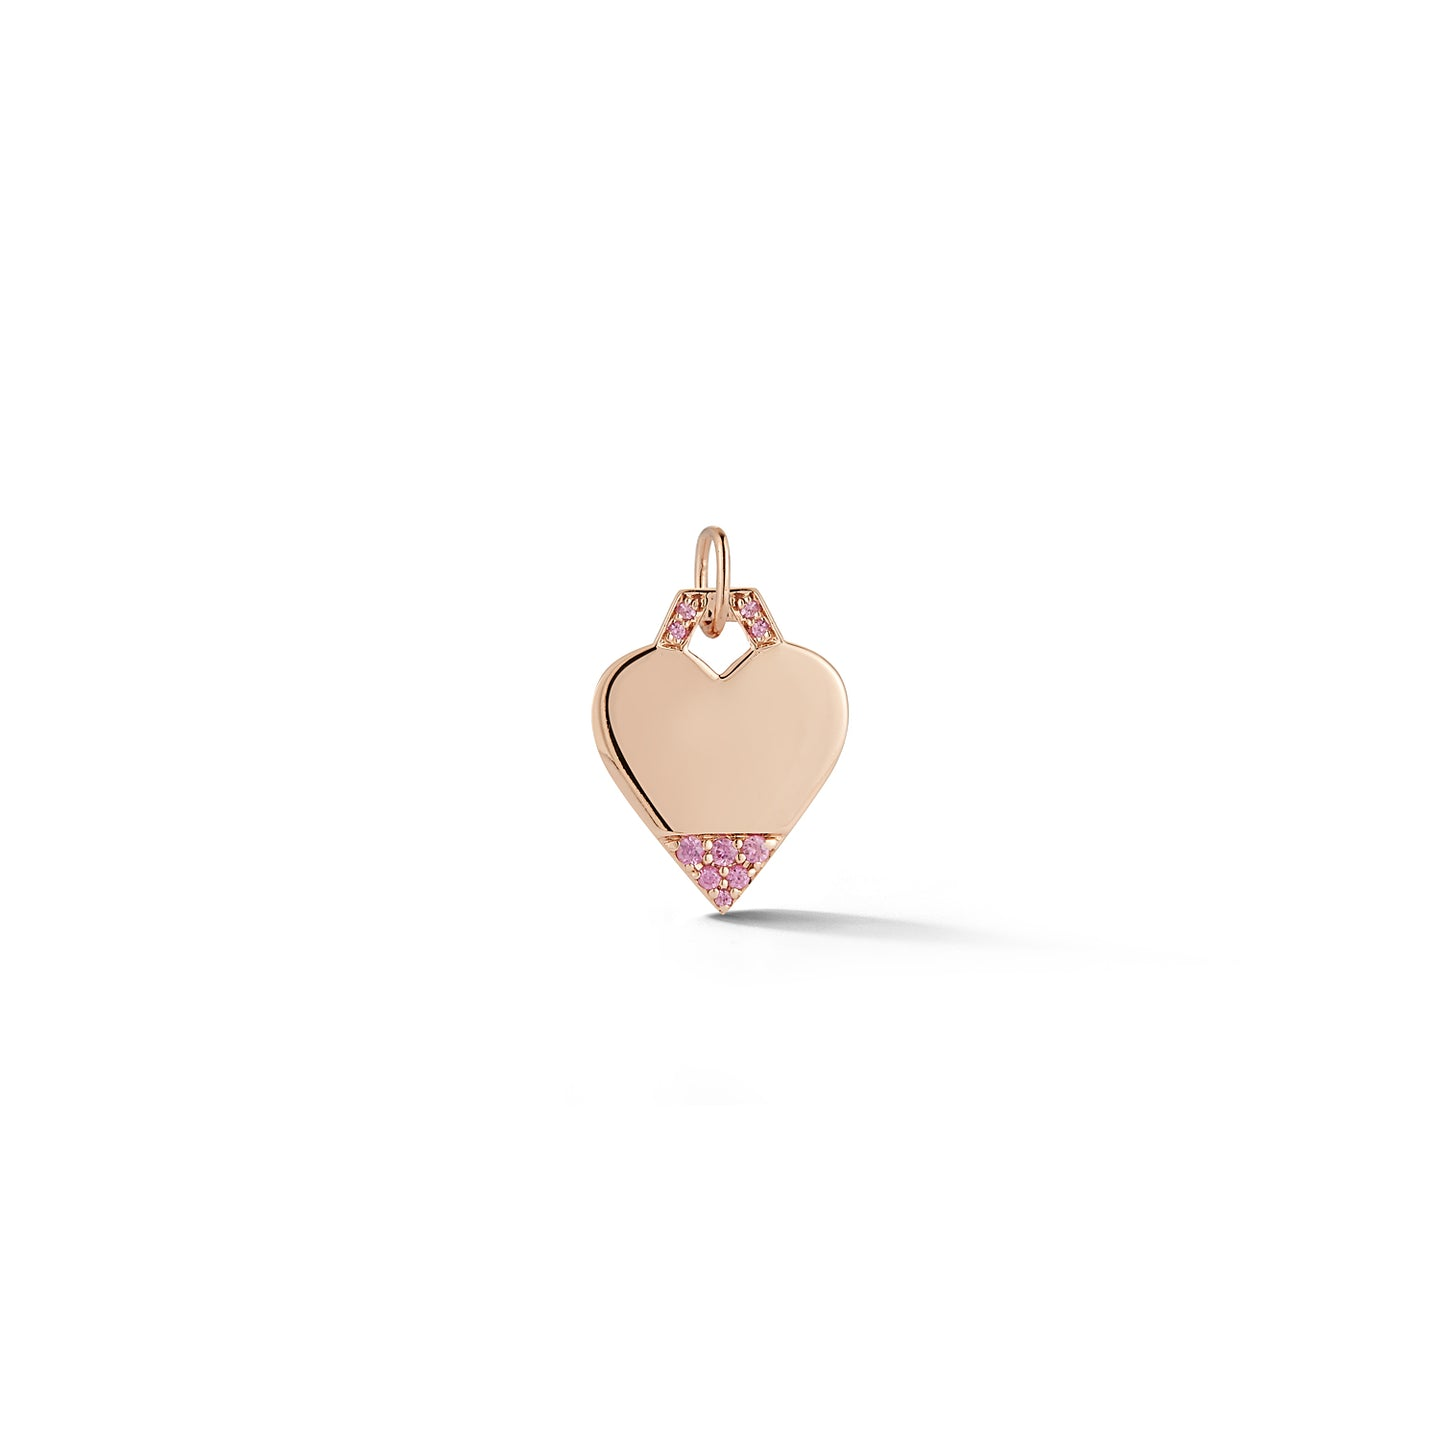 DORA 18K ROSE GOLD AND 1/3 PINK SAPPHIRE BOTTOM MINI HEART CHARM